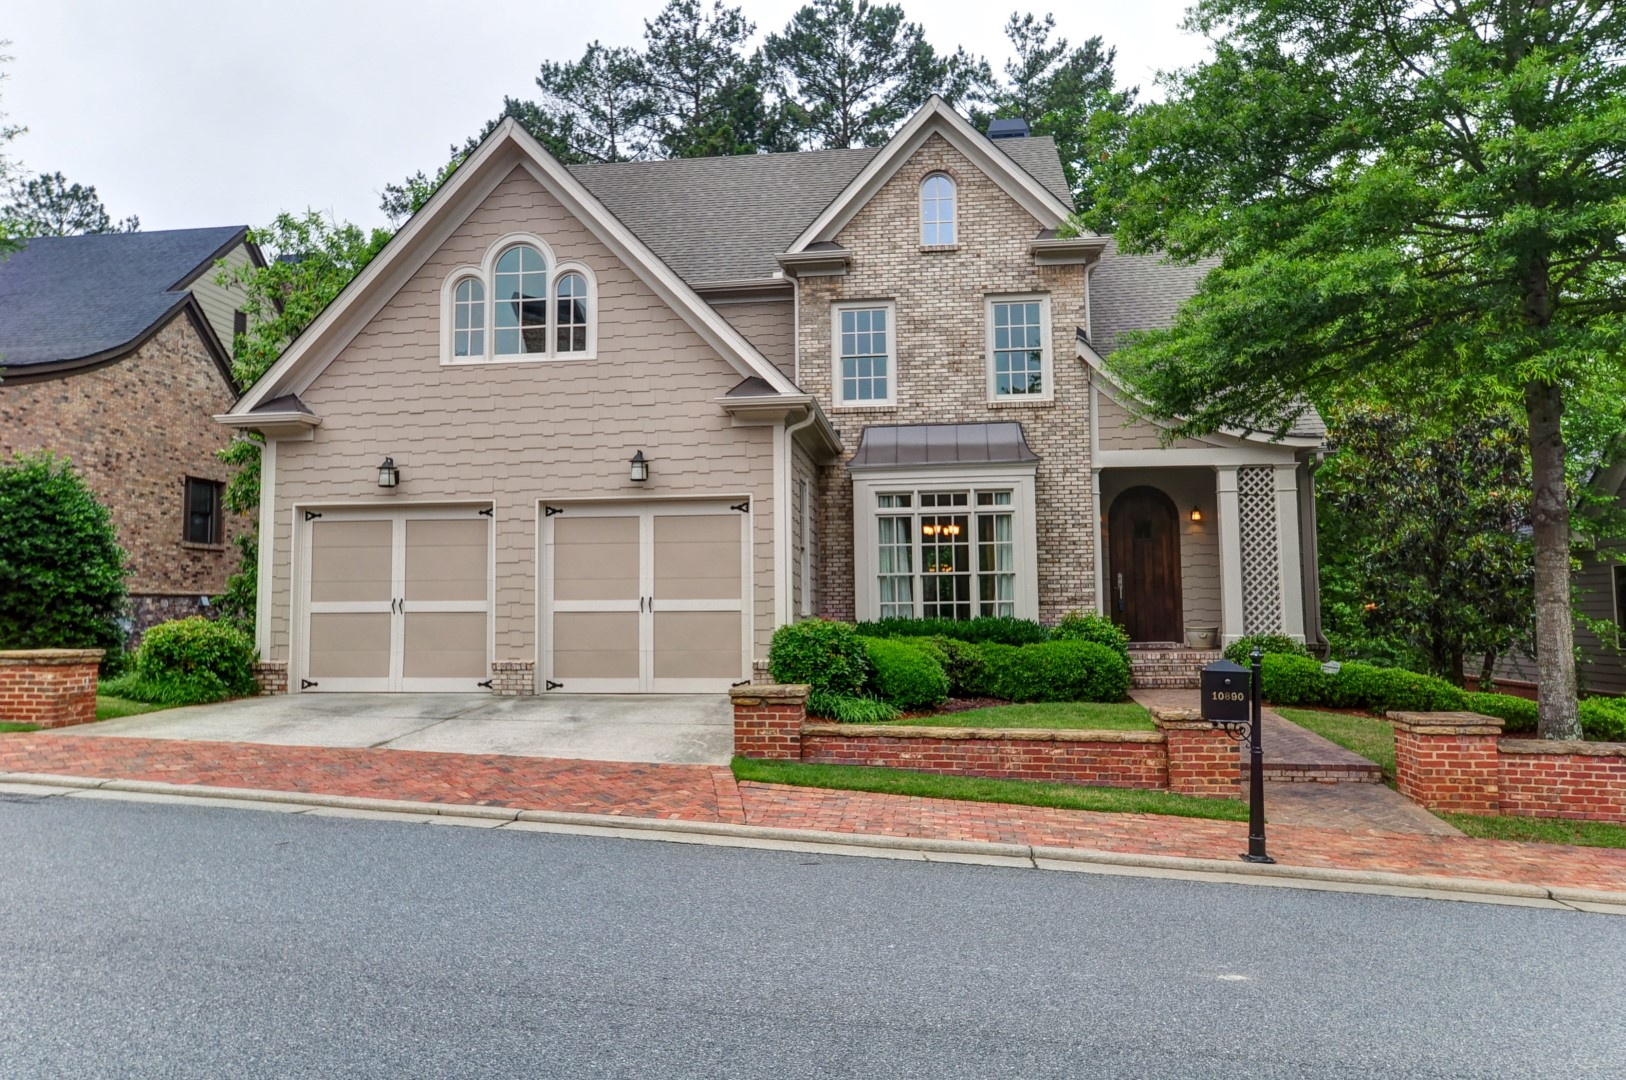 Single Family Home for Sale at Stately Home in a Charming Tree Lined Gated Community 10890 Carrissa Trail Alpharetta, Georgia 30022 United States